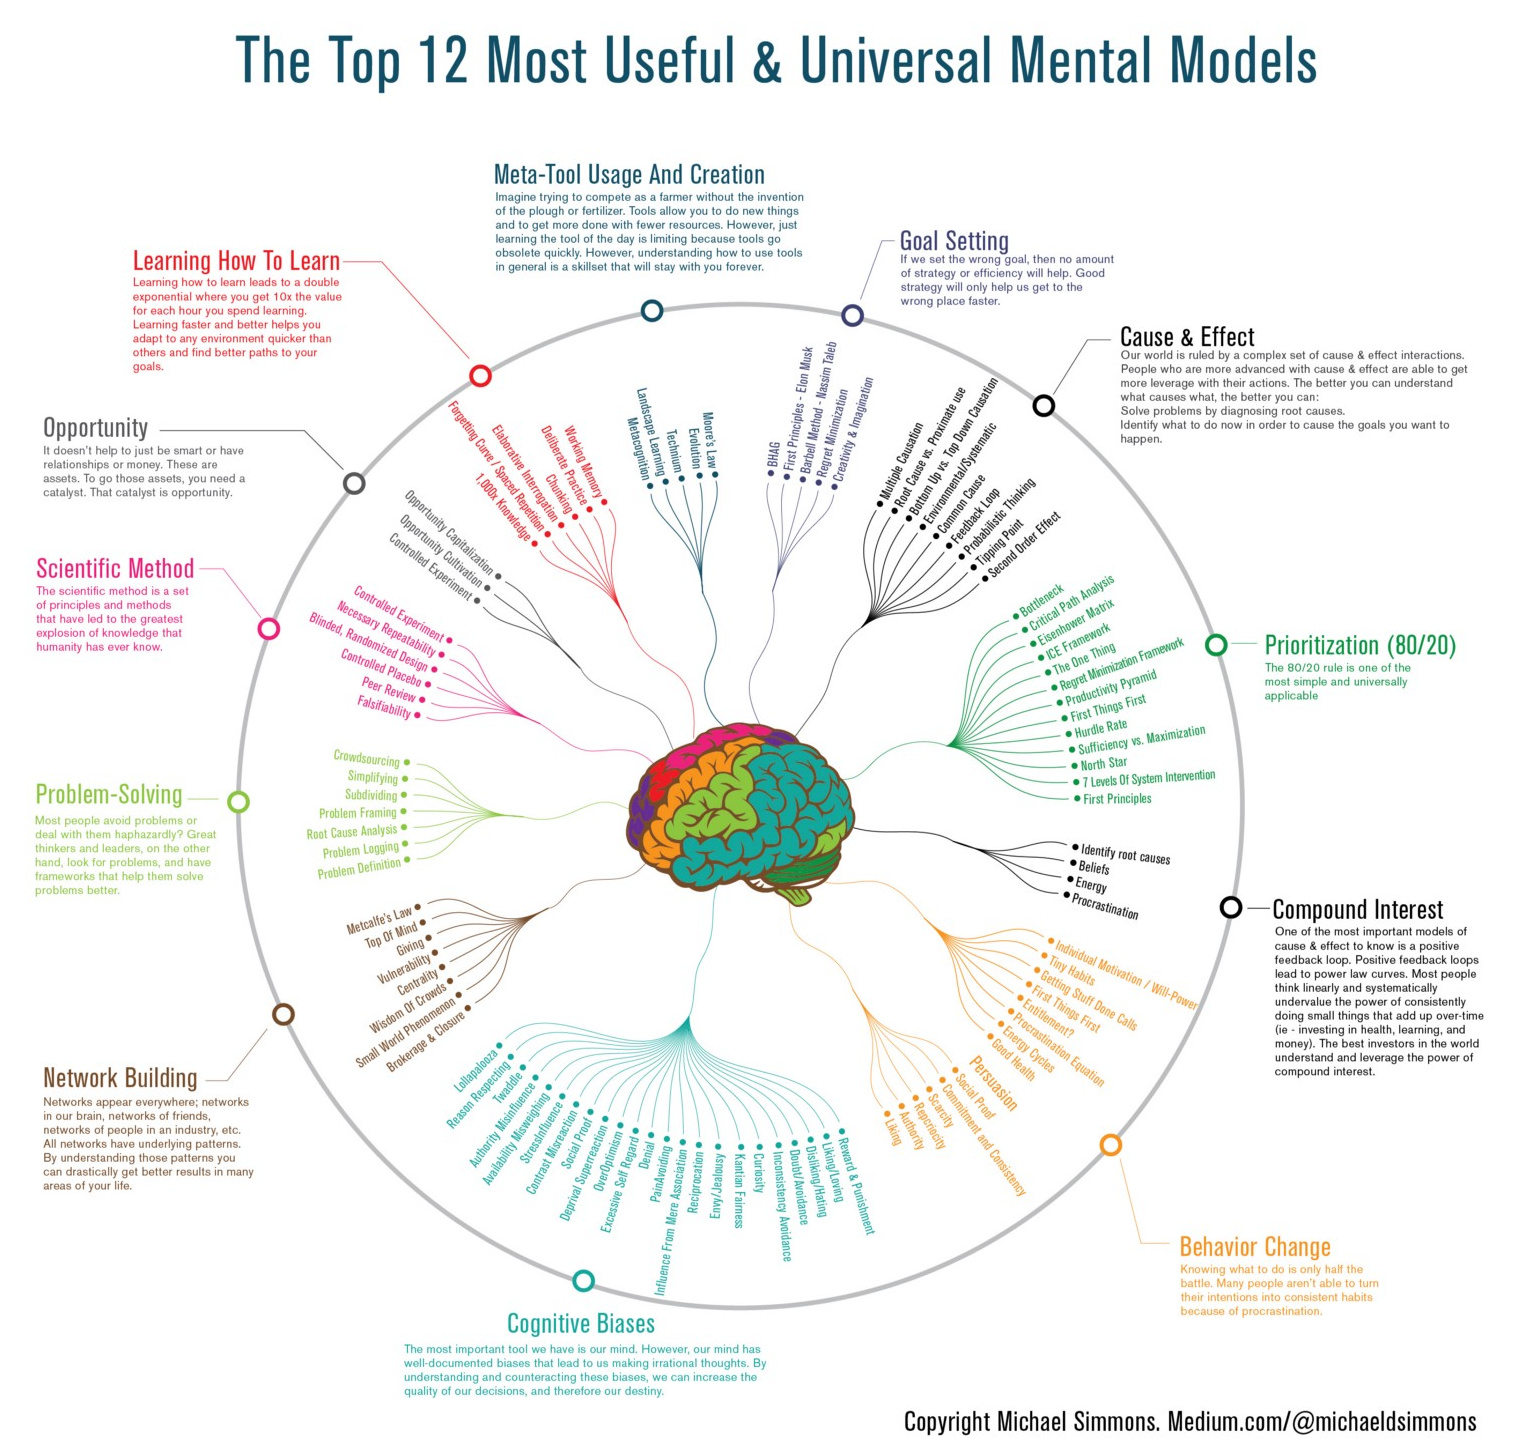 Excellent Graphic - Take the time to zoom in and examine it closely -  https://www.visualcapitalist.com/12-ways-smarter-mental-models/